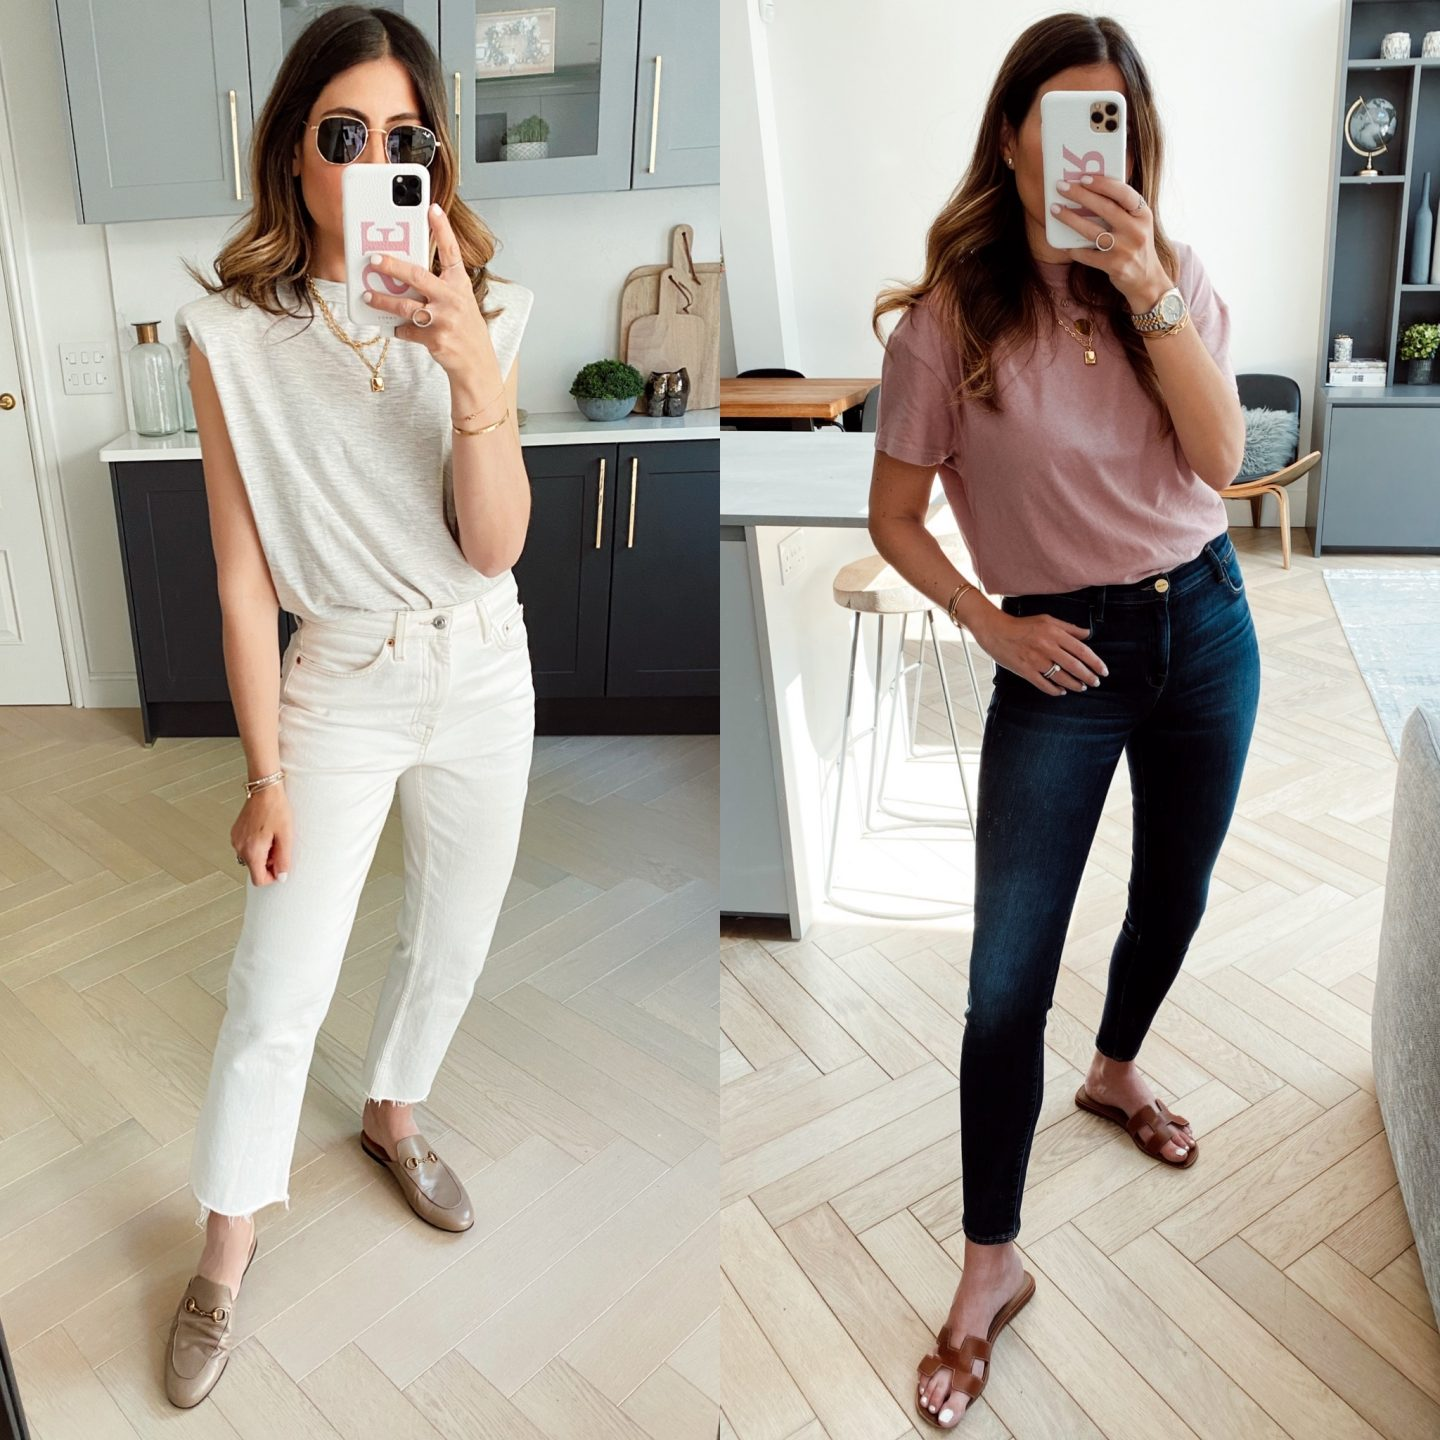 JEANS & A TEE STYLED 6 WAYS